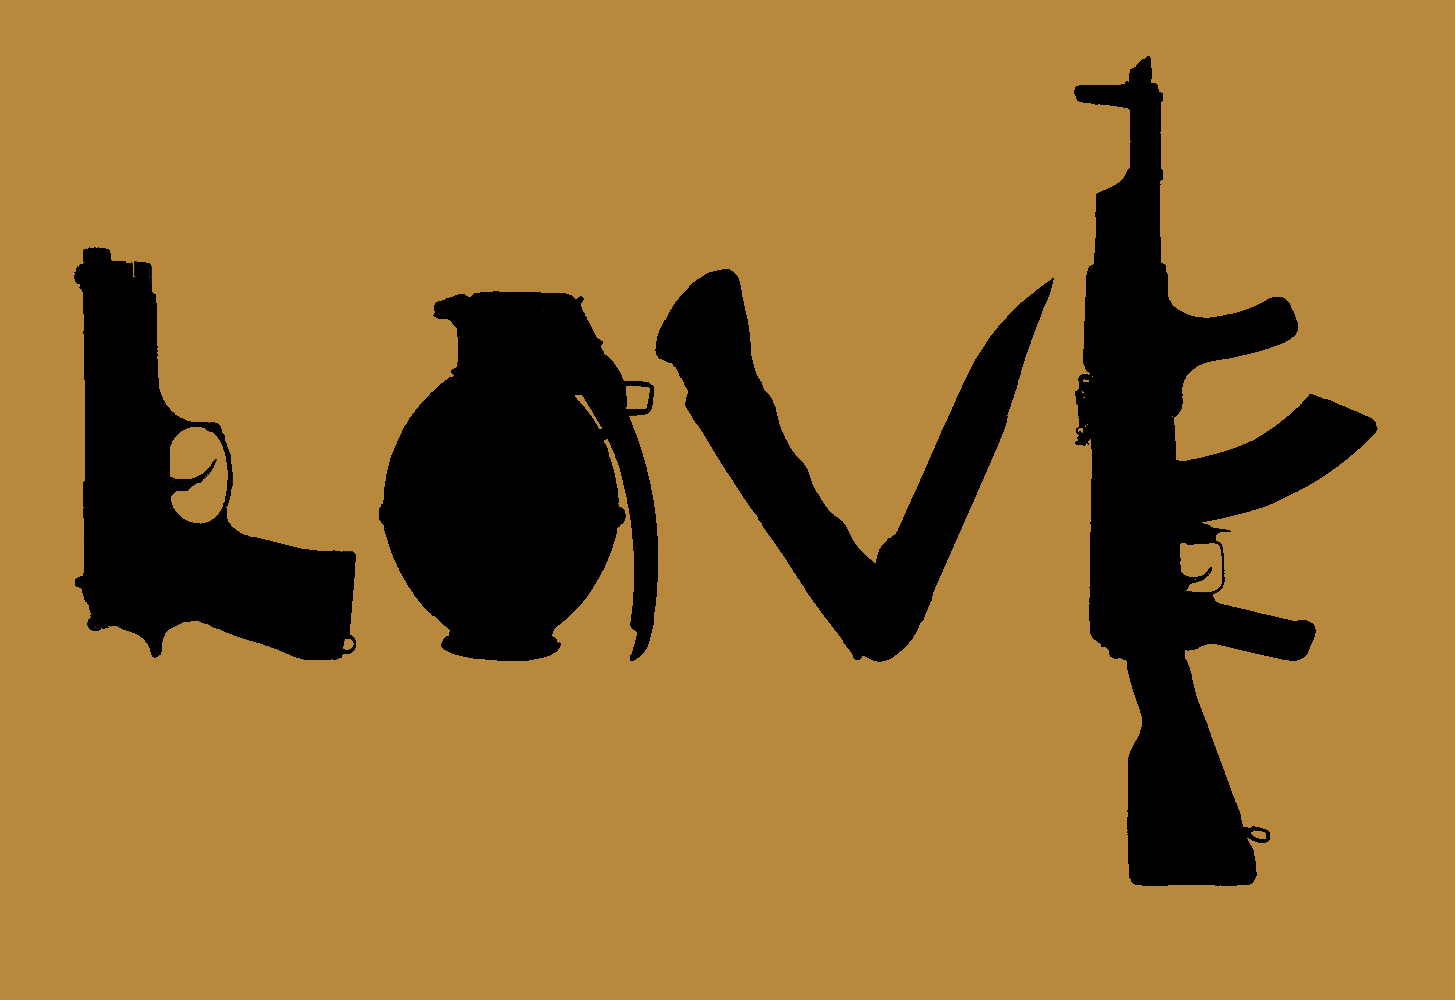 Rifles love Guns silhouettes HD Wallpaper